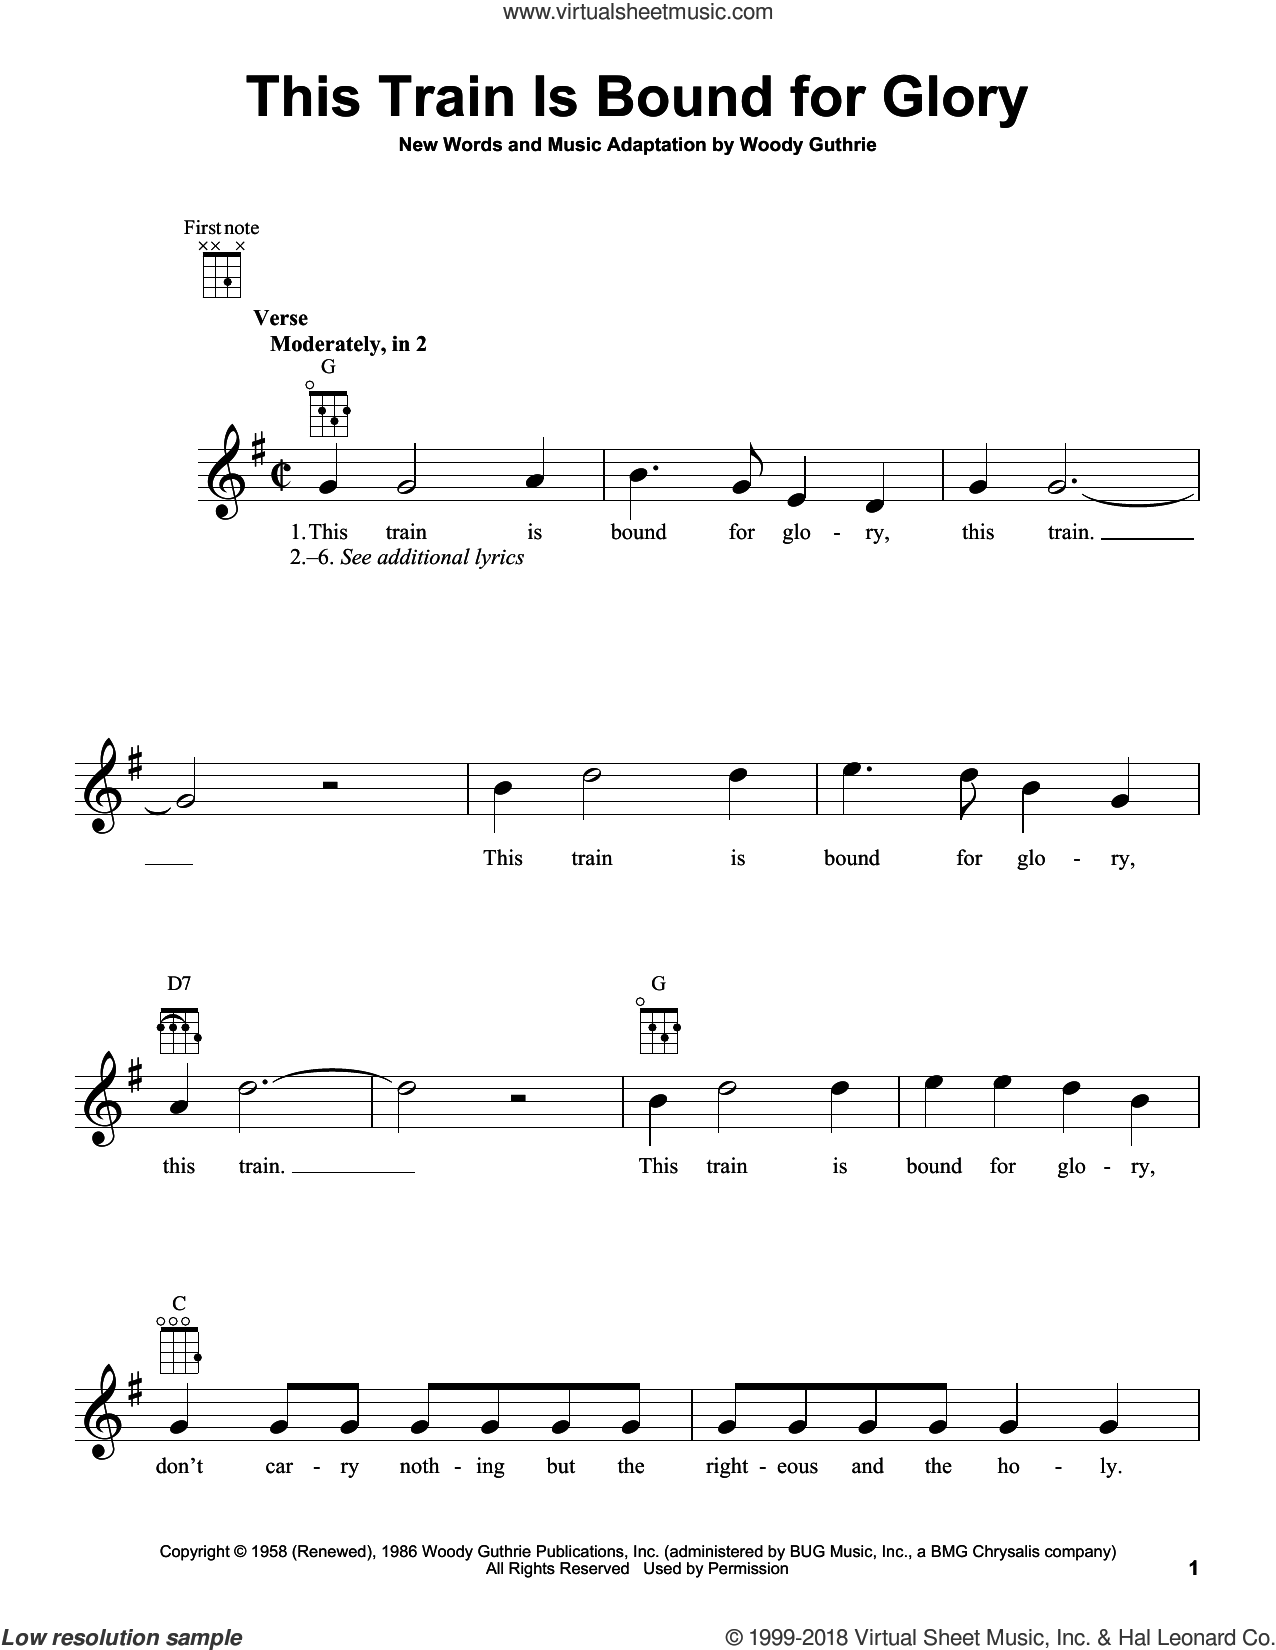 This Train Is Bound For Glory sheet music for ukulele by Woody Guthrie